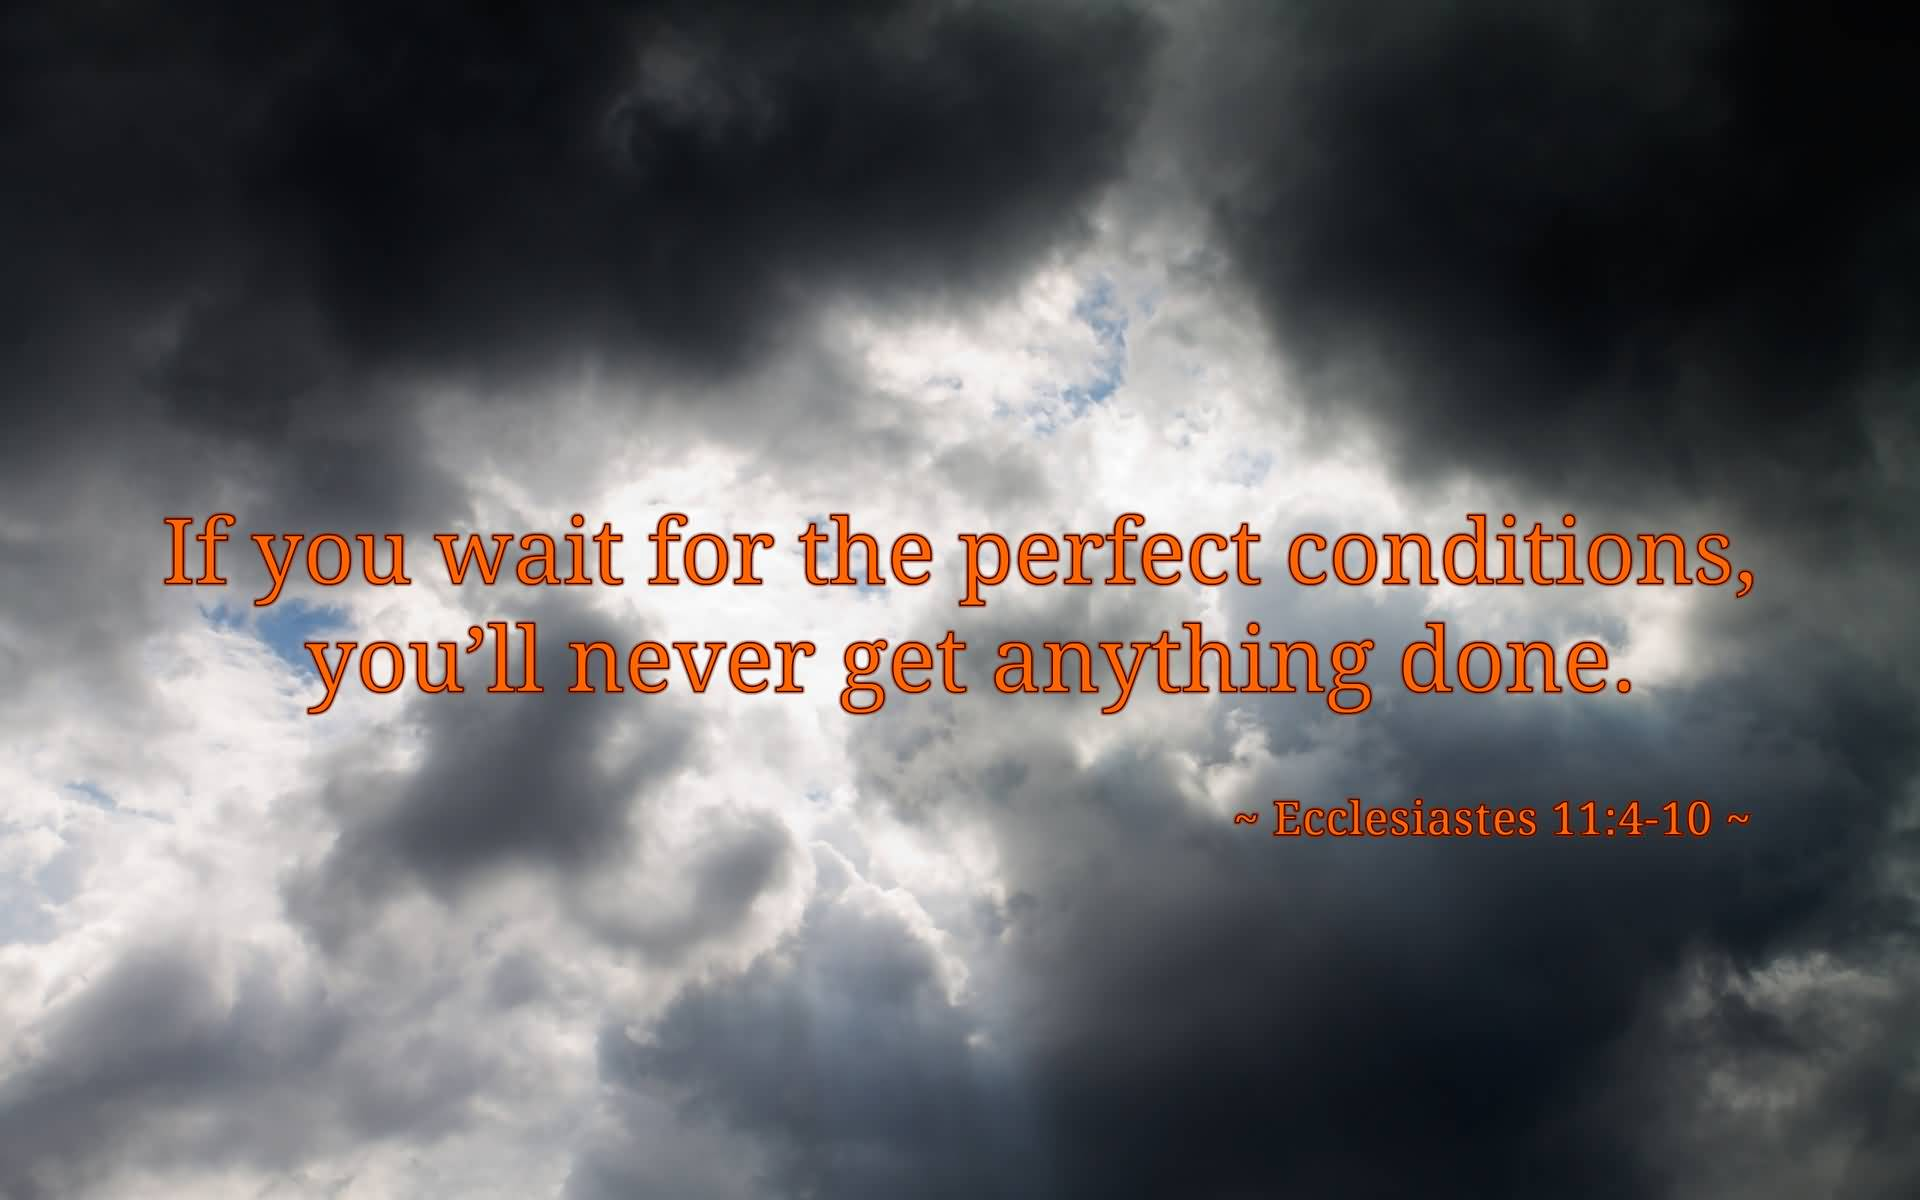 If You Wait For The Perfect Conditions You'll Never Get Anything Done. Ecclesiastes